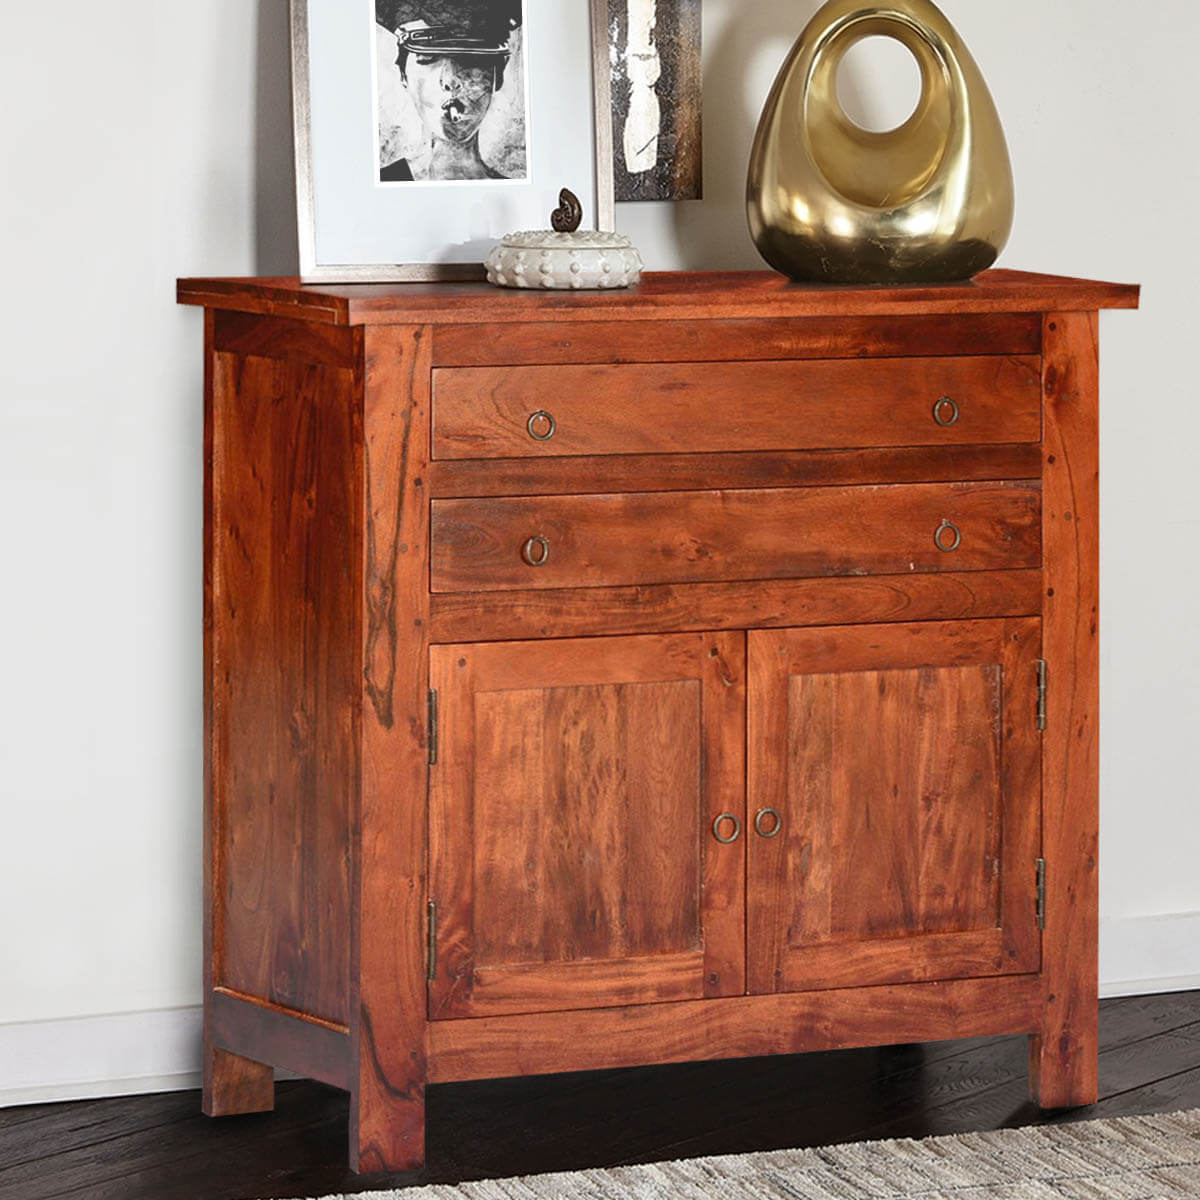 Mission Classic Acacia Wood Buffet Sideboard Cabinet